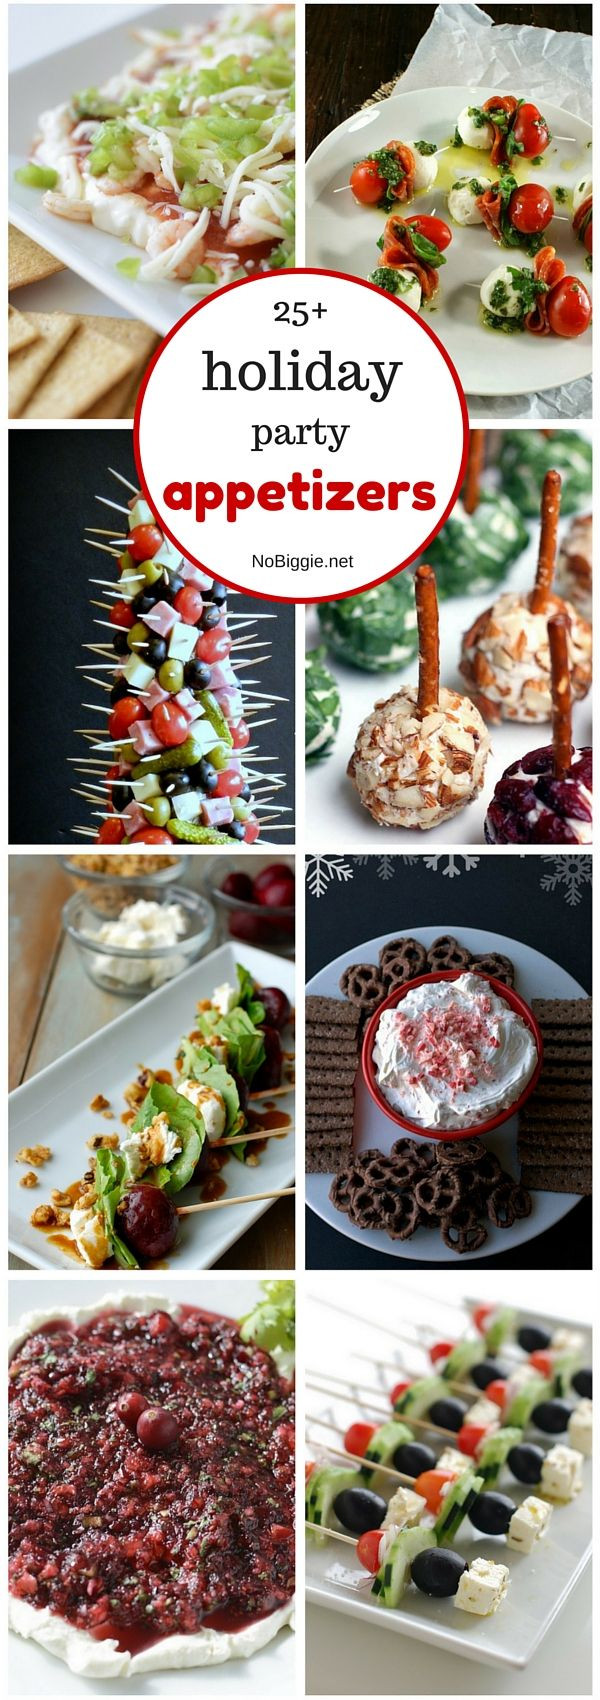 Christmas Party Appetizers Finger Foods  25 holiday party appetizers NoBiggie Roundups